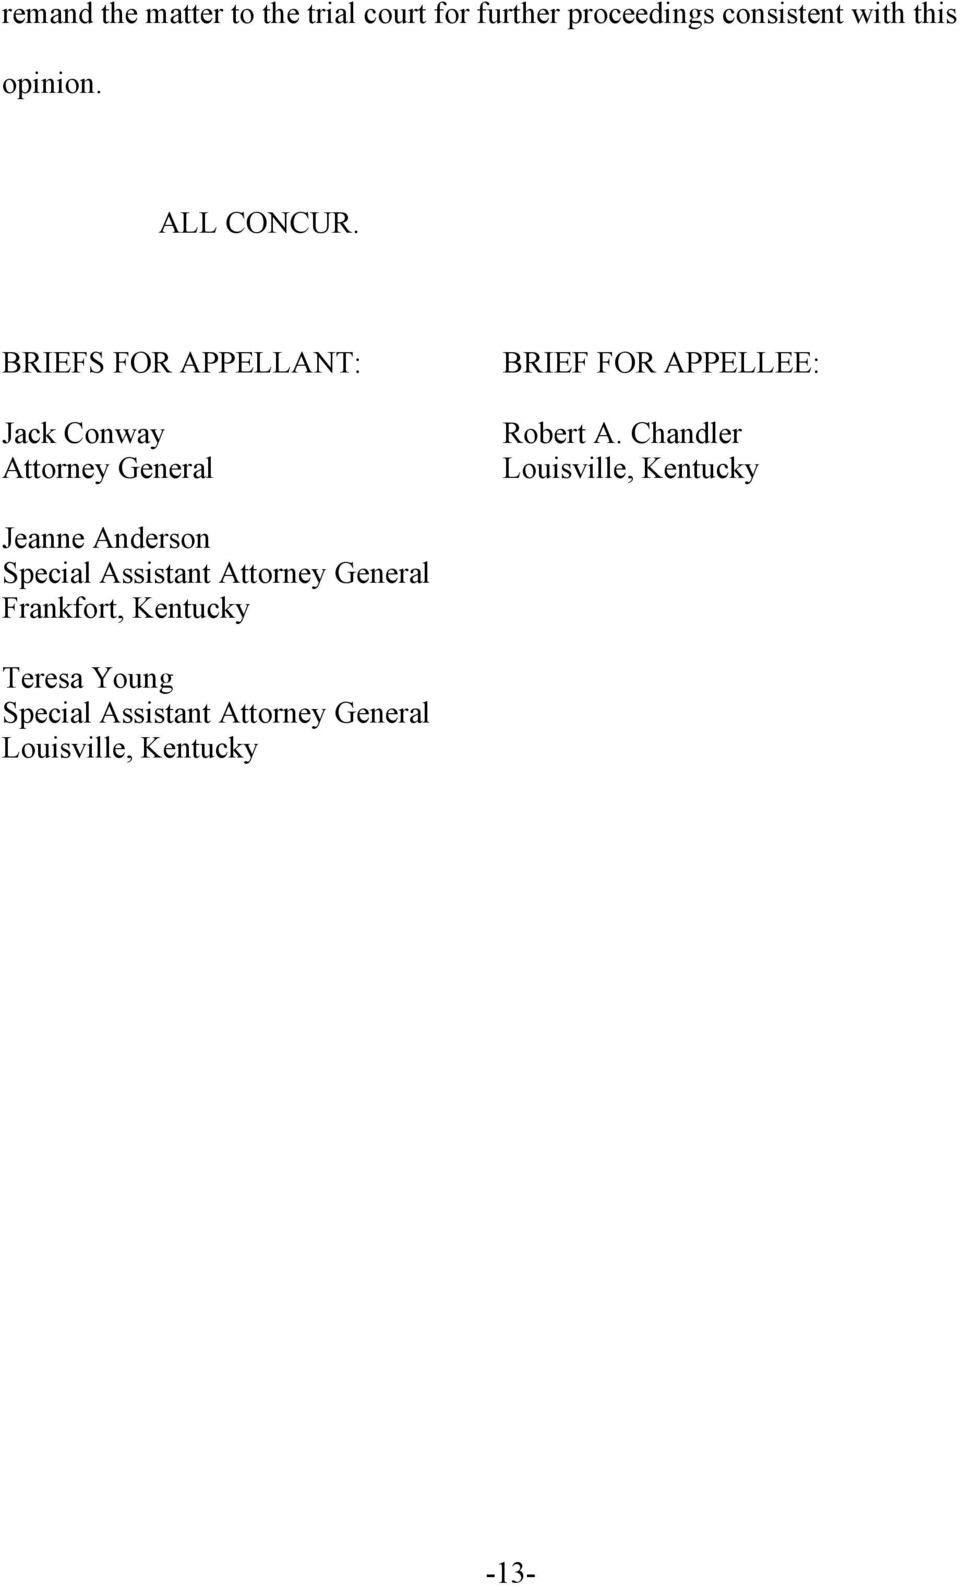 BRIEFS FOR APPELLANT: Jack Conway Attorney General BRIEF FOR APPELLEE: Robert A.